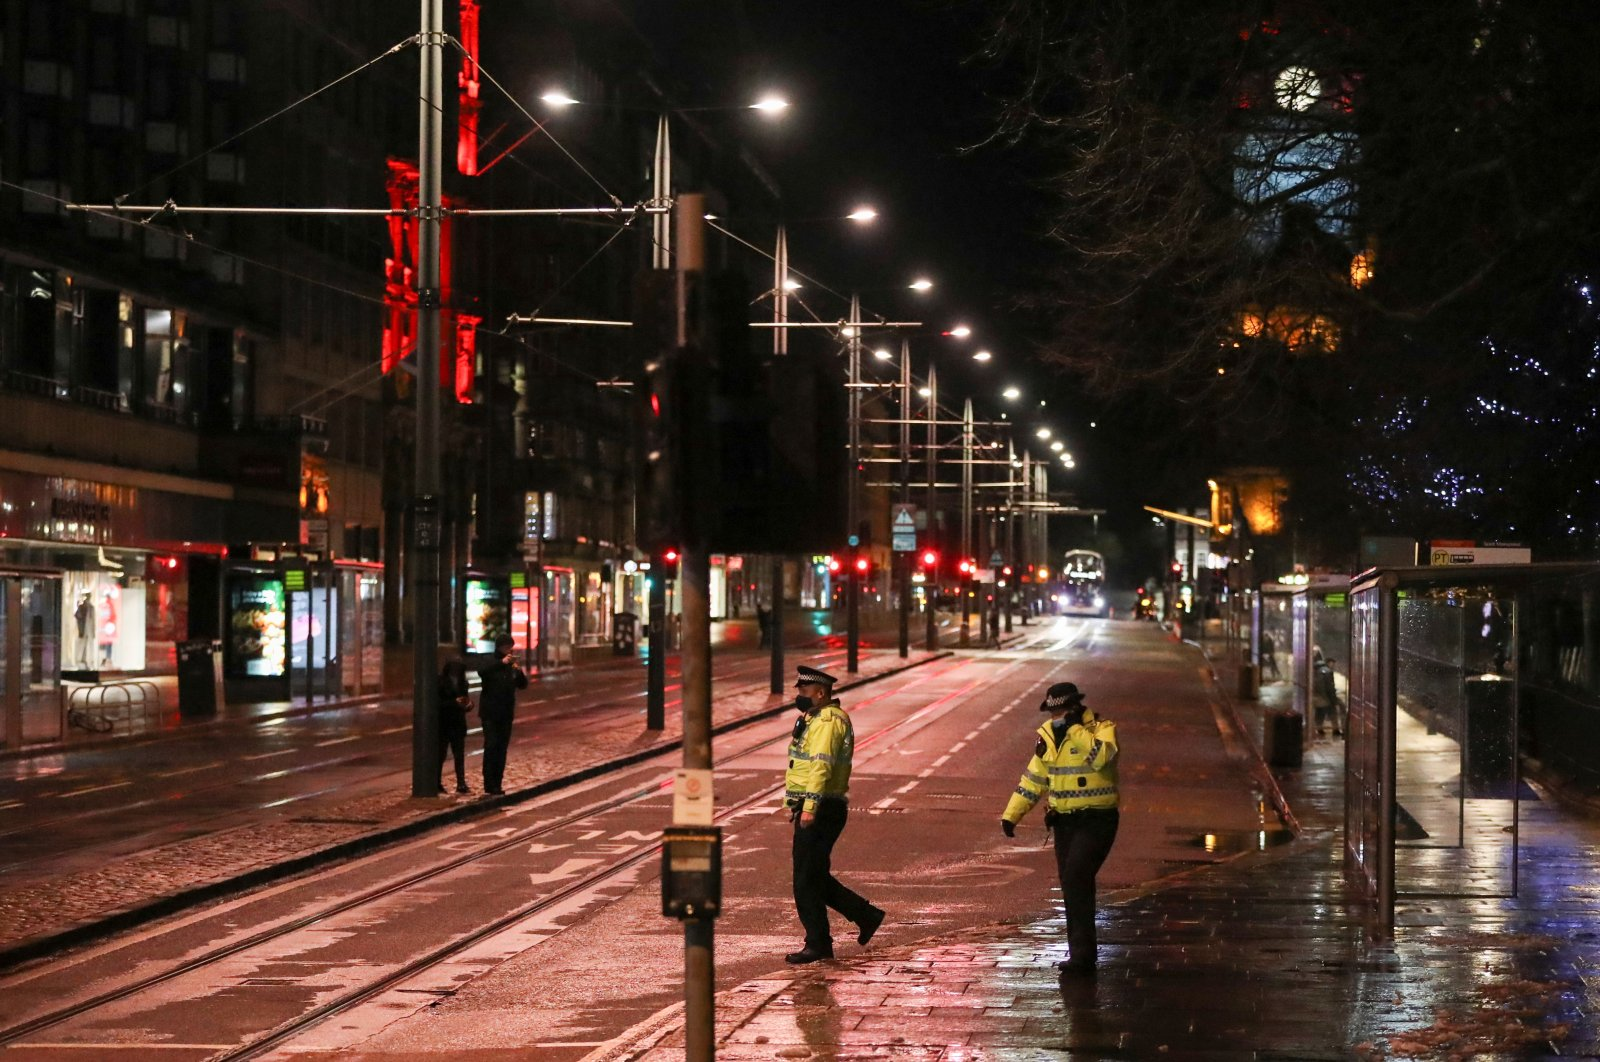 Police officers cross a nearly empty street during New Year's Eve amid the coronavirus pandemic, in Edinburgh, Britain, Dec. 31, 2020. (Reuters Photo)